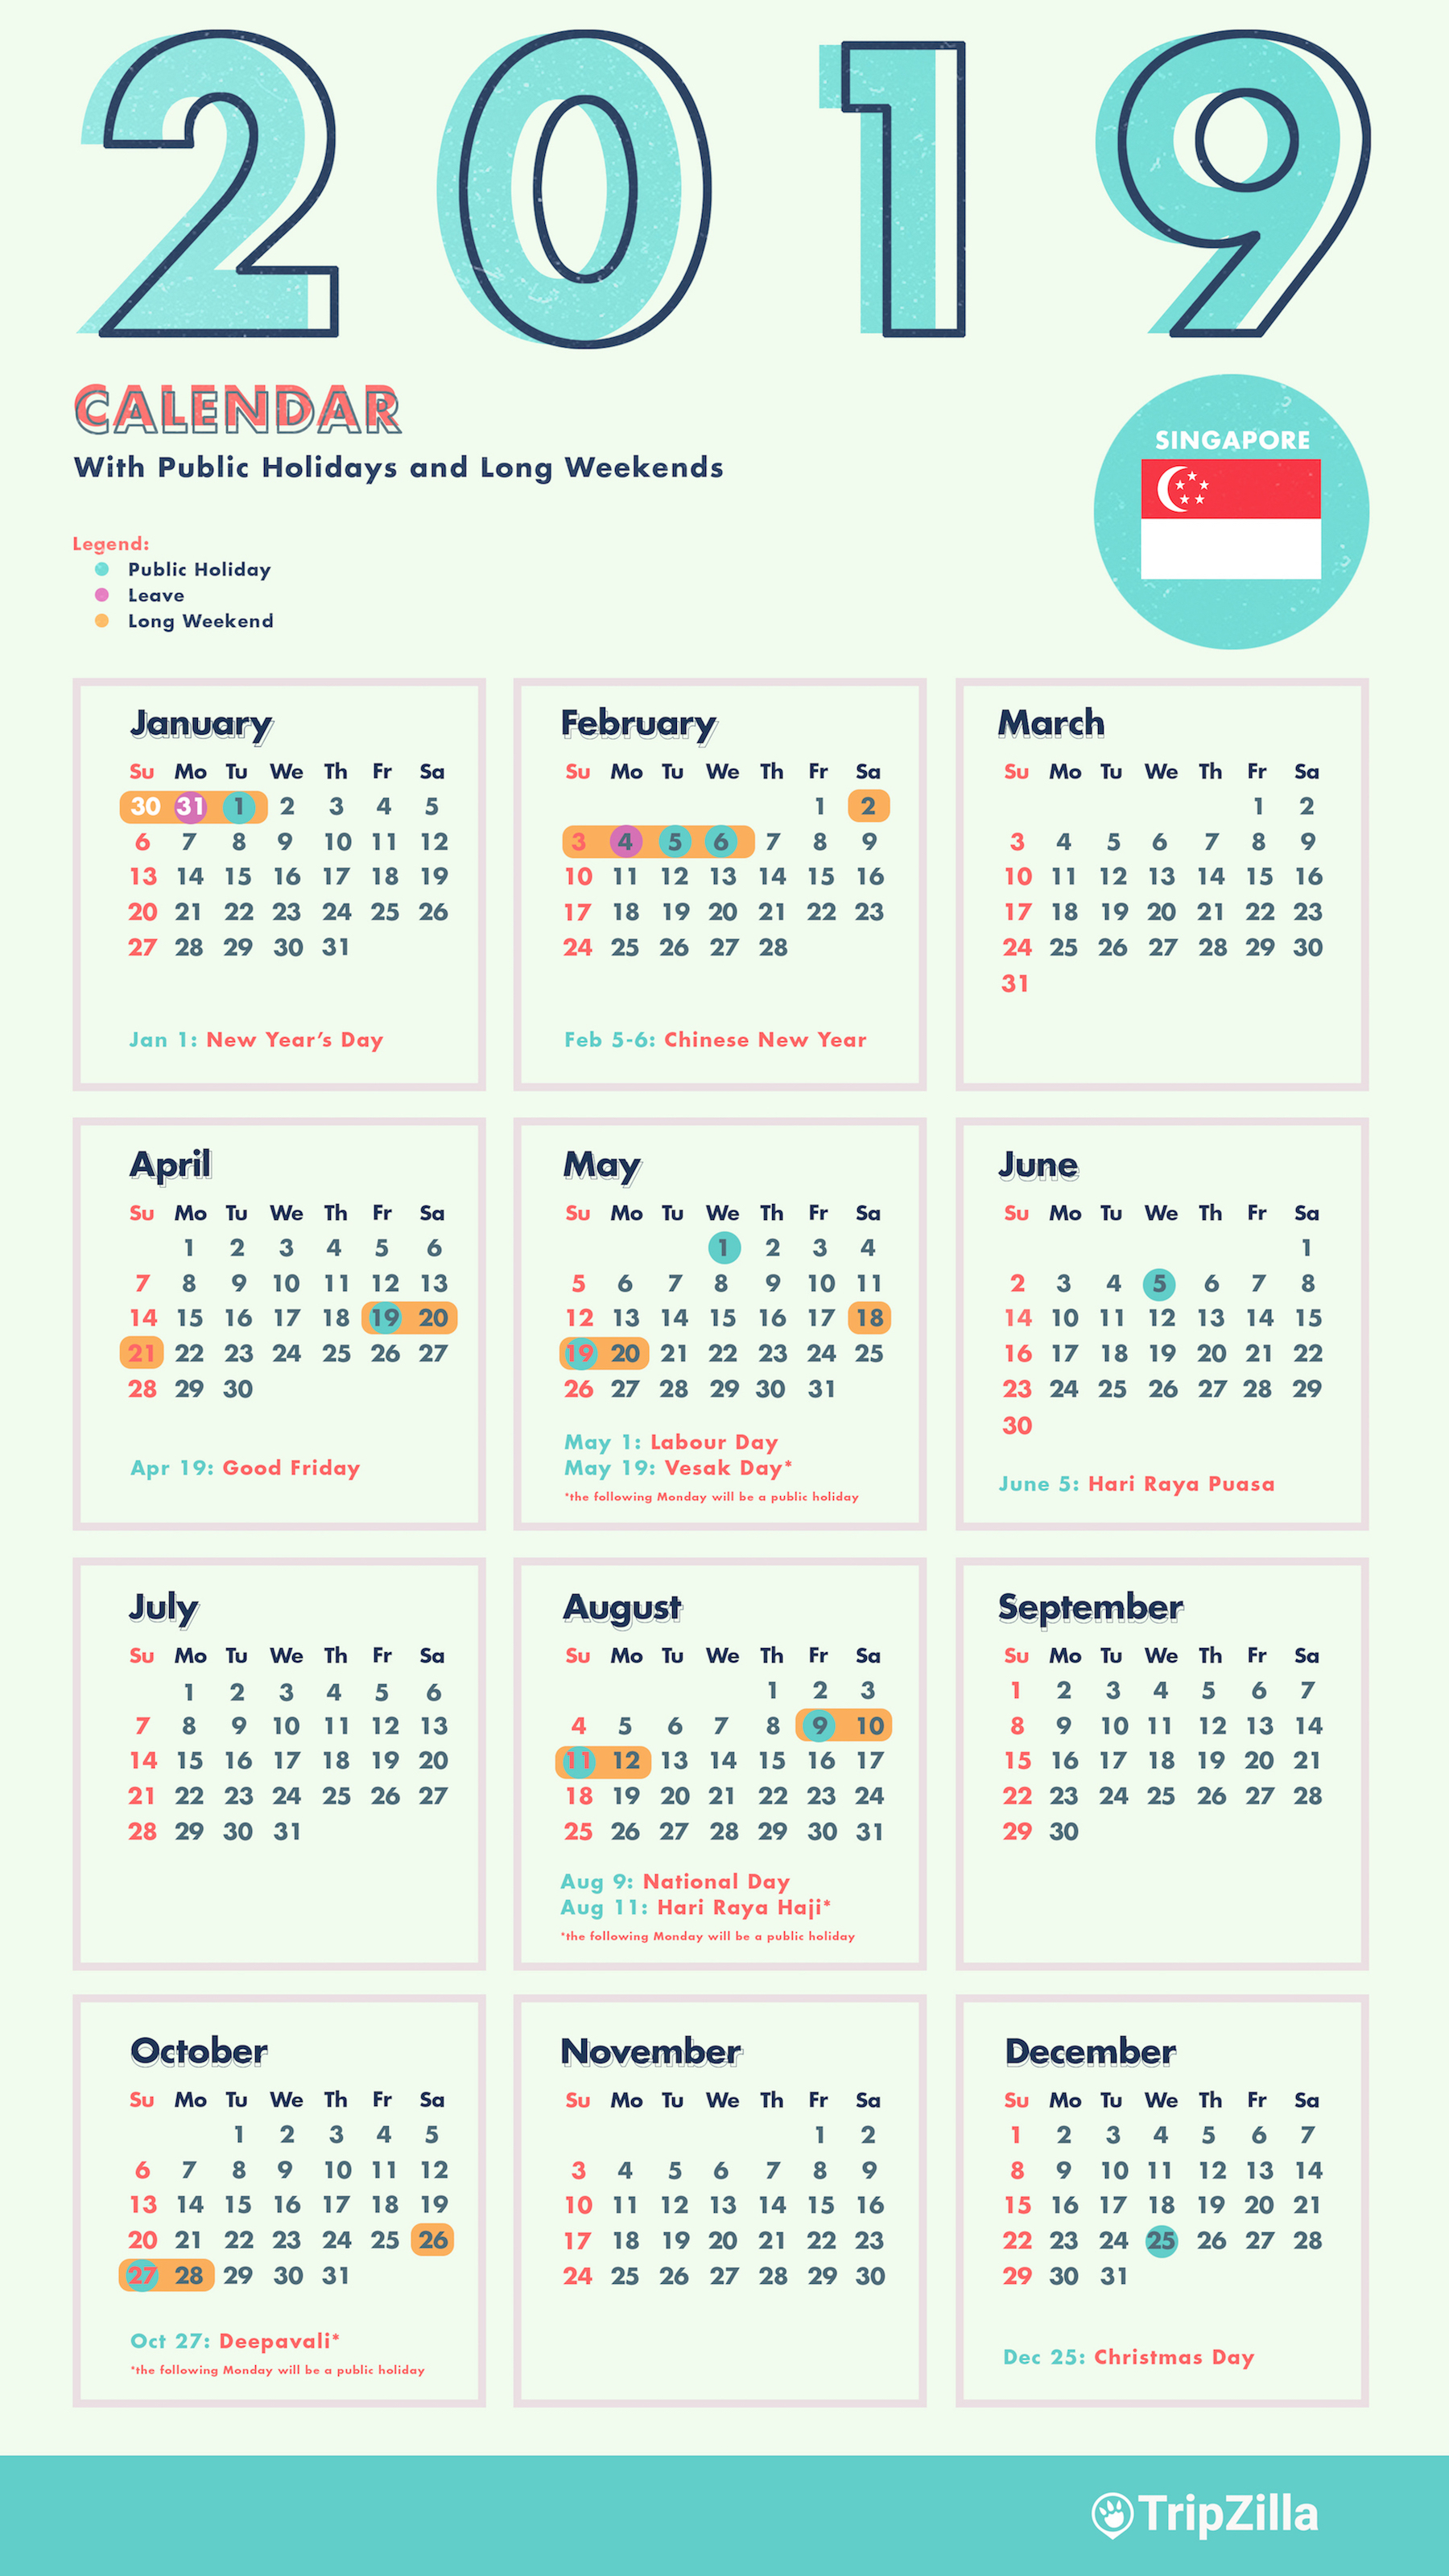 2019 Leave Calendar 6 Long Weekends in Singapore in 2019 (Bonus Calendar & Cheatsheet)